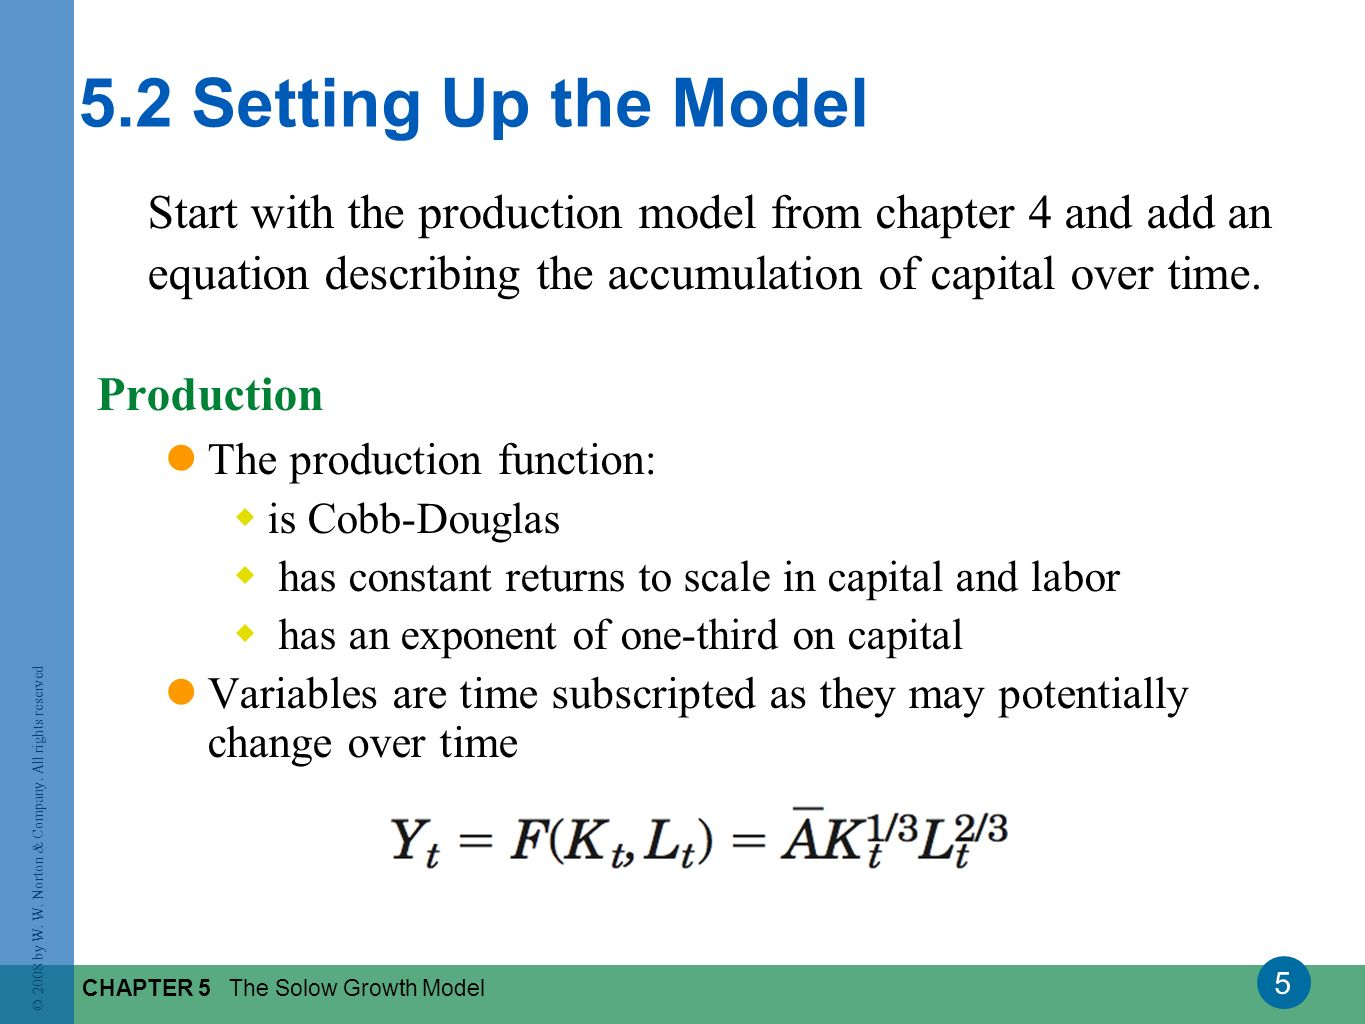 5.2 Setting Up the Model Start with the production model from chapter 4 and add an equation describing the accumulation of capital over time.